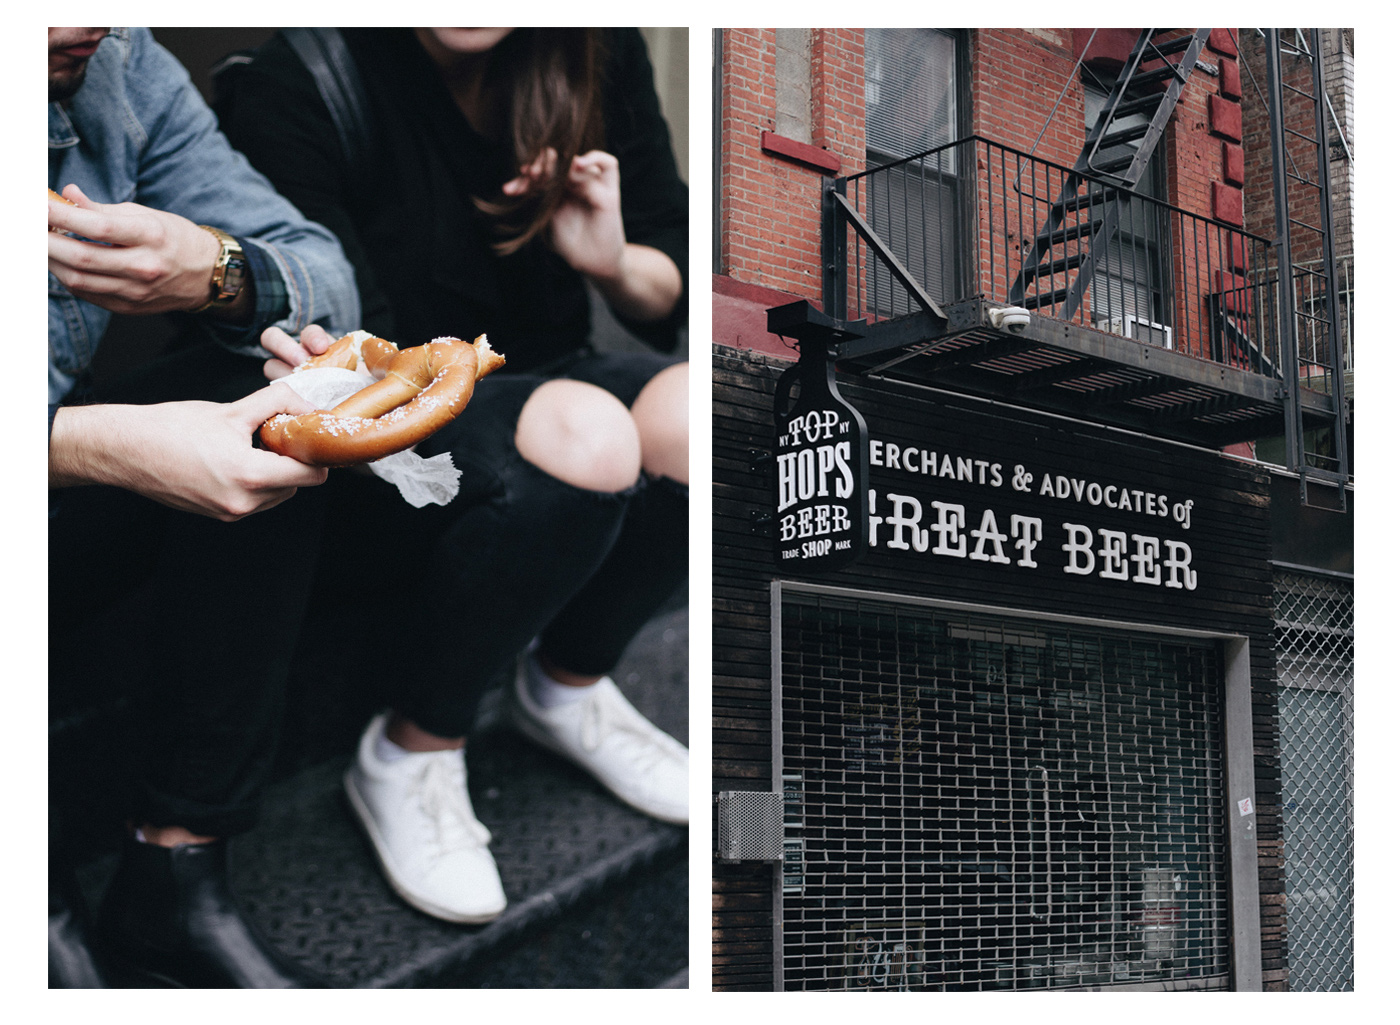 You guys have to eat one huge pretzel in New York city